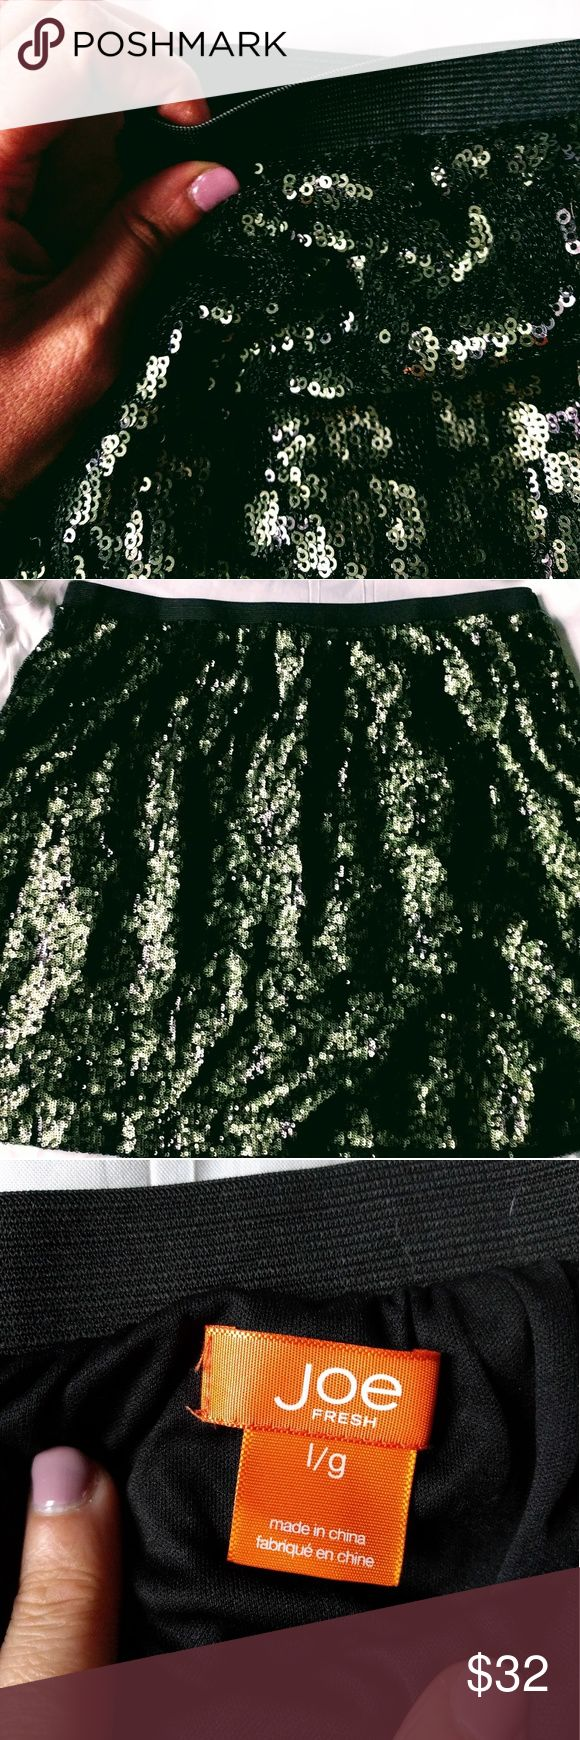 ✨✨ SEQUINED SKIRT✨✨ Be festive in this dark green sequin skirt. Perfect for the upcoming HOLIDAYS!!! -or- wear it out for a night on the town 🌃💃.  In great shape, no loose thread or missing sequins. Joe Fresh Skirts Midi